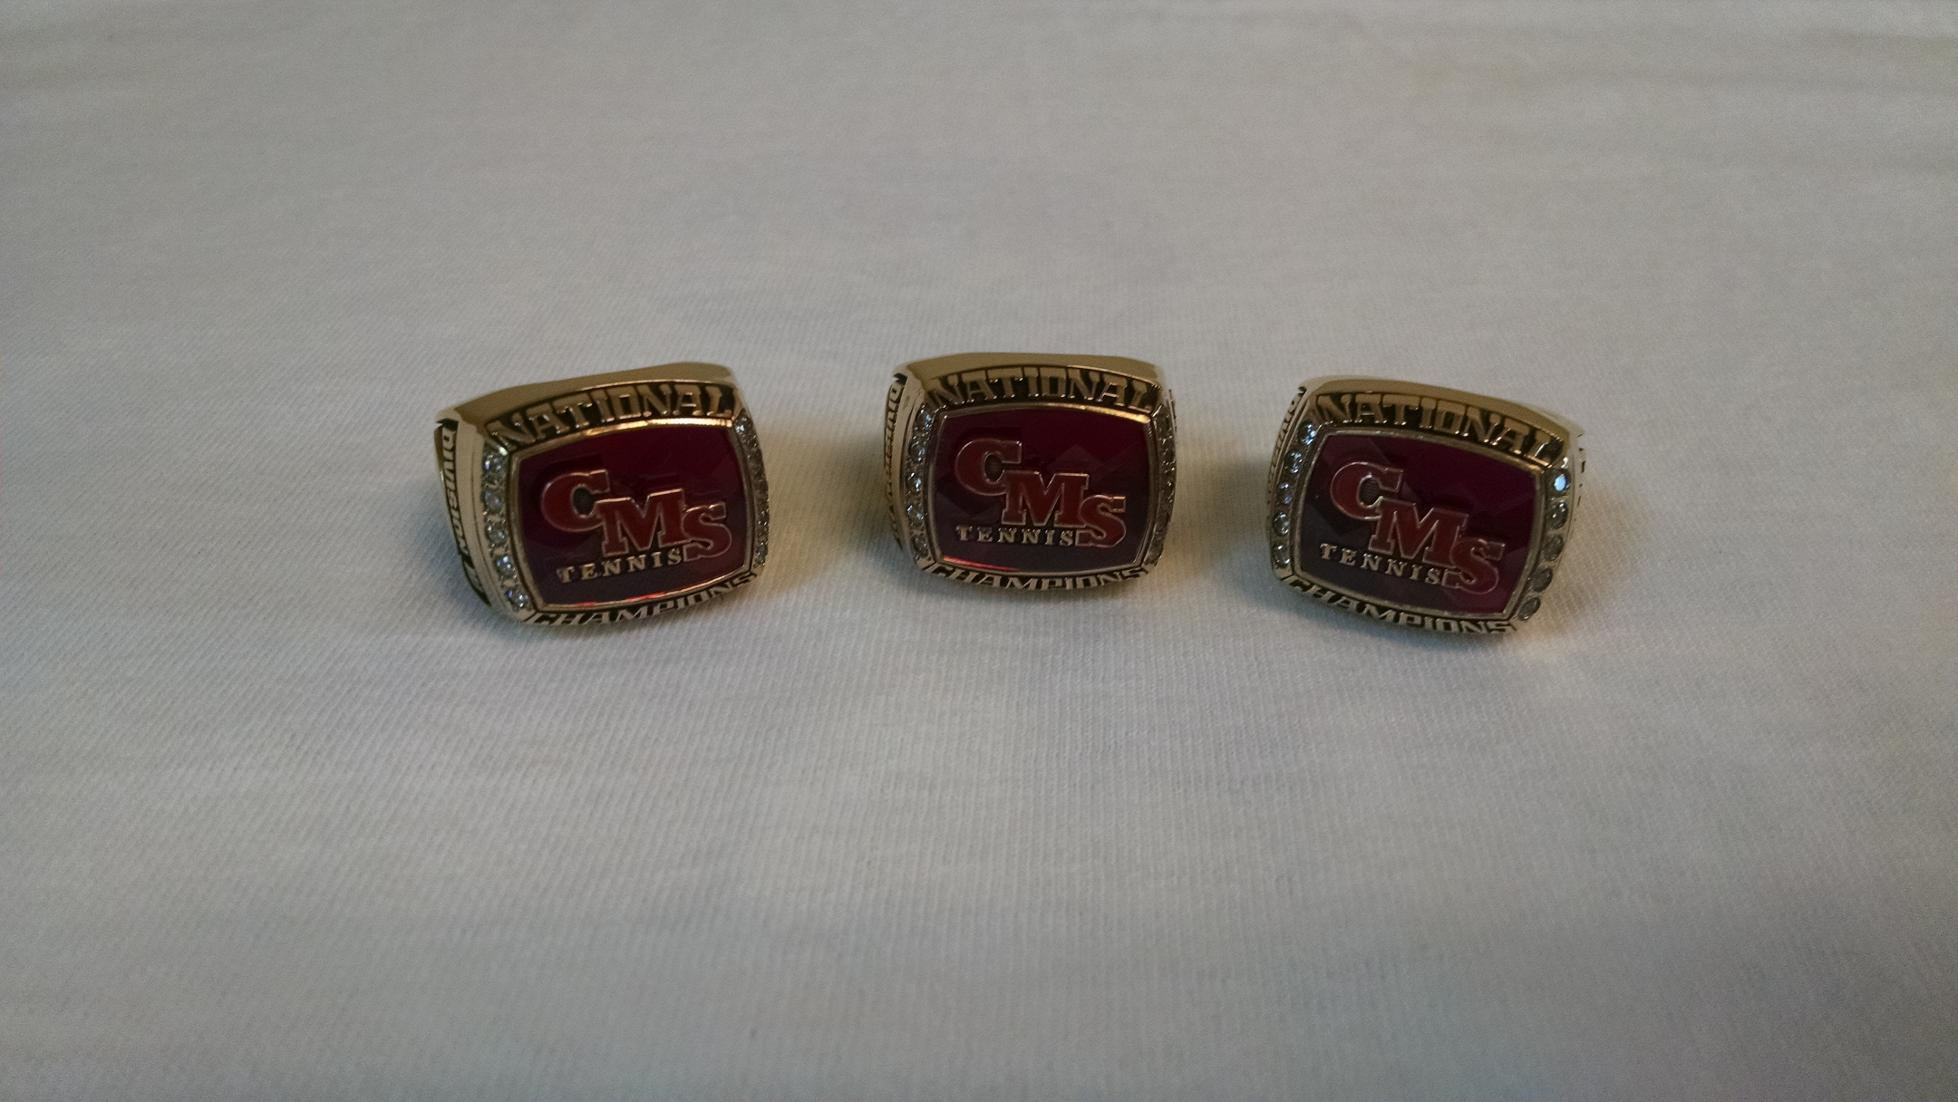 only name football championship alabama rings ncaa products crimson ace set personalized ring collectors tide